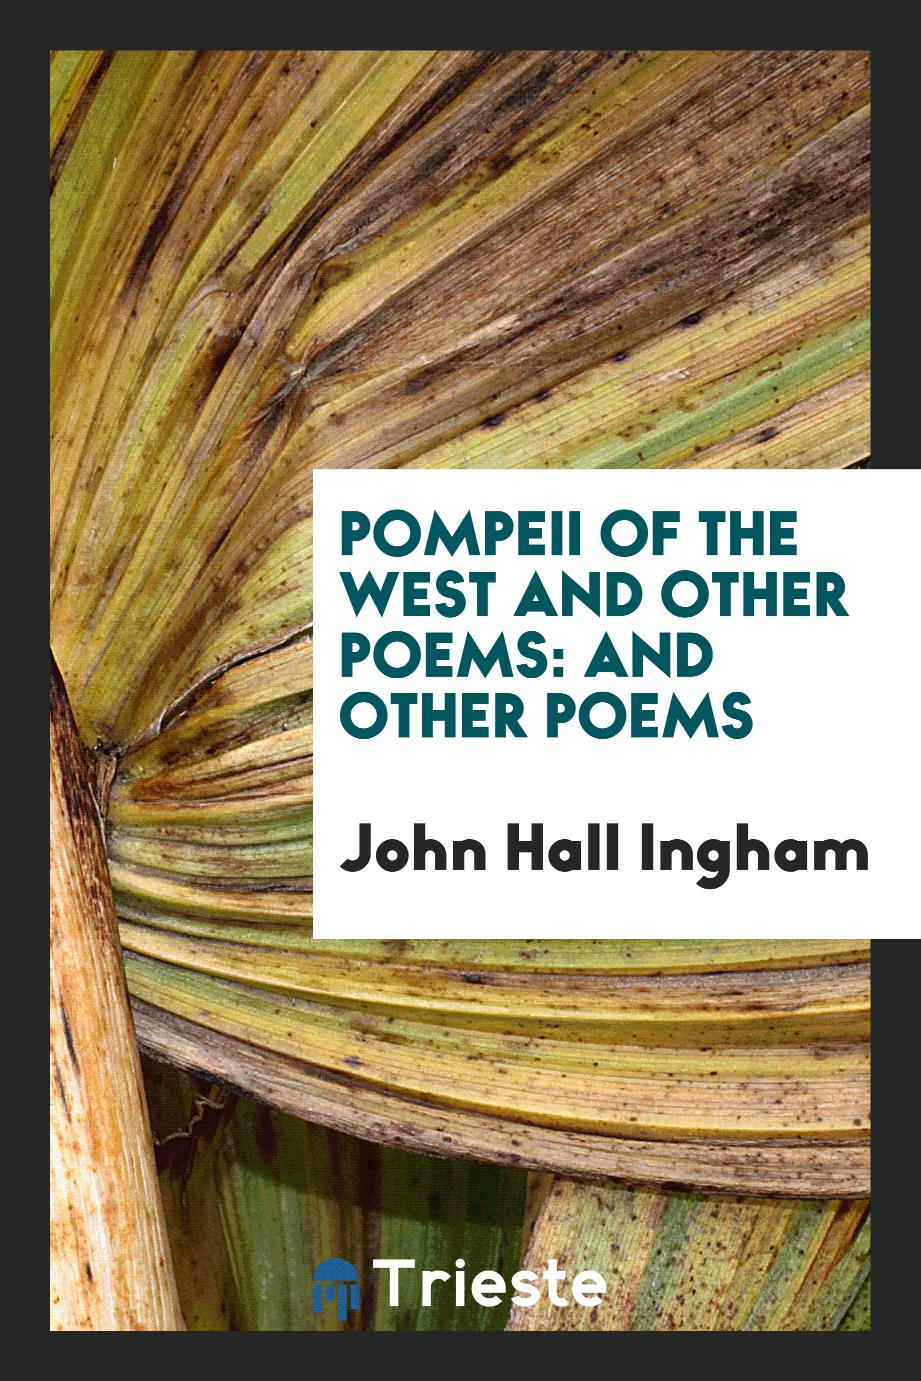 Pompeii of the West and Other Poems: And Other Poems